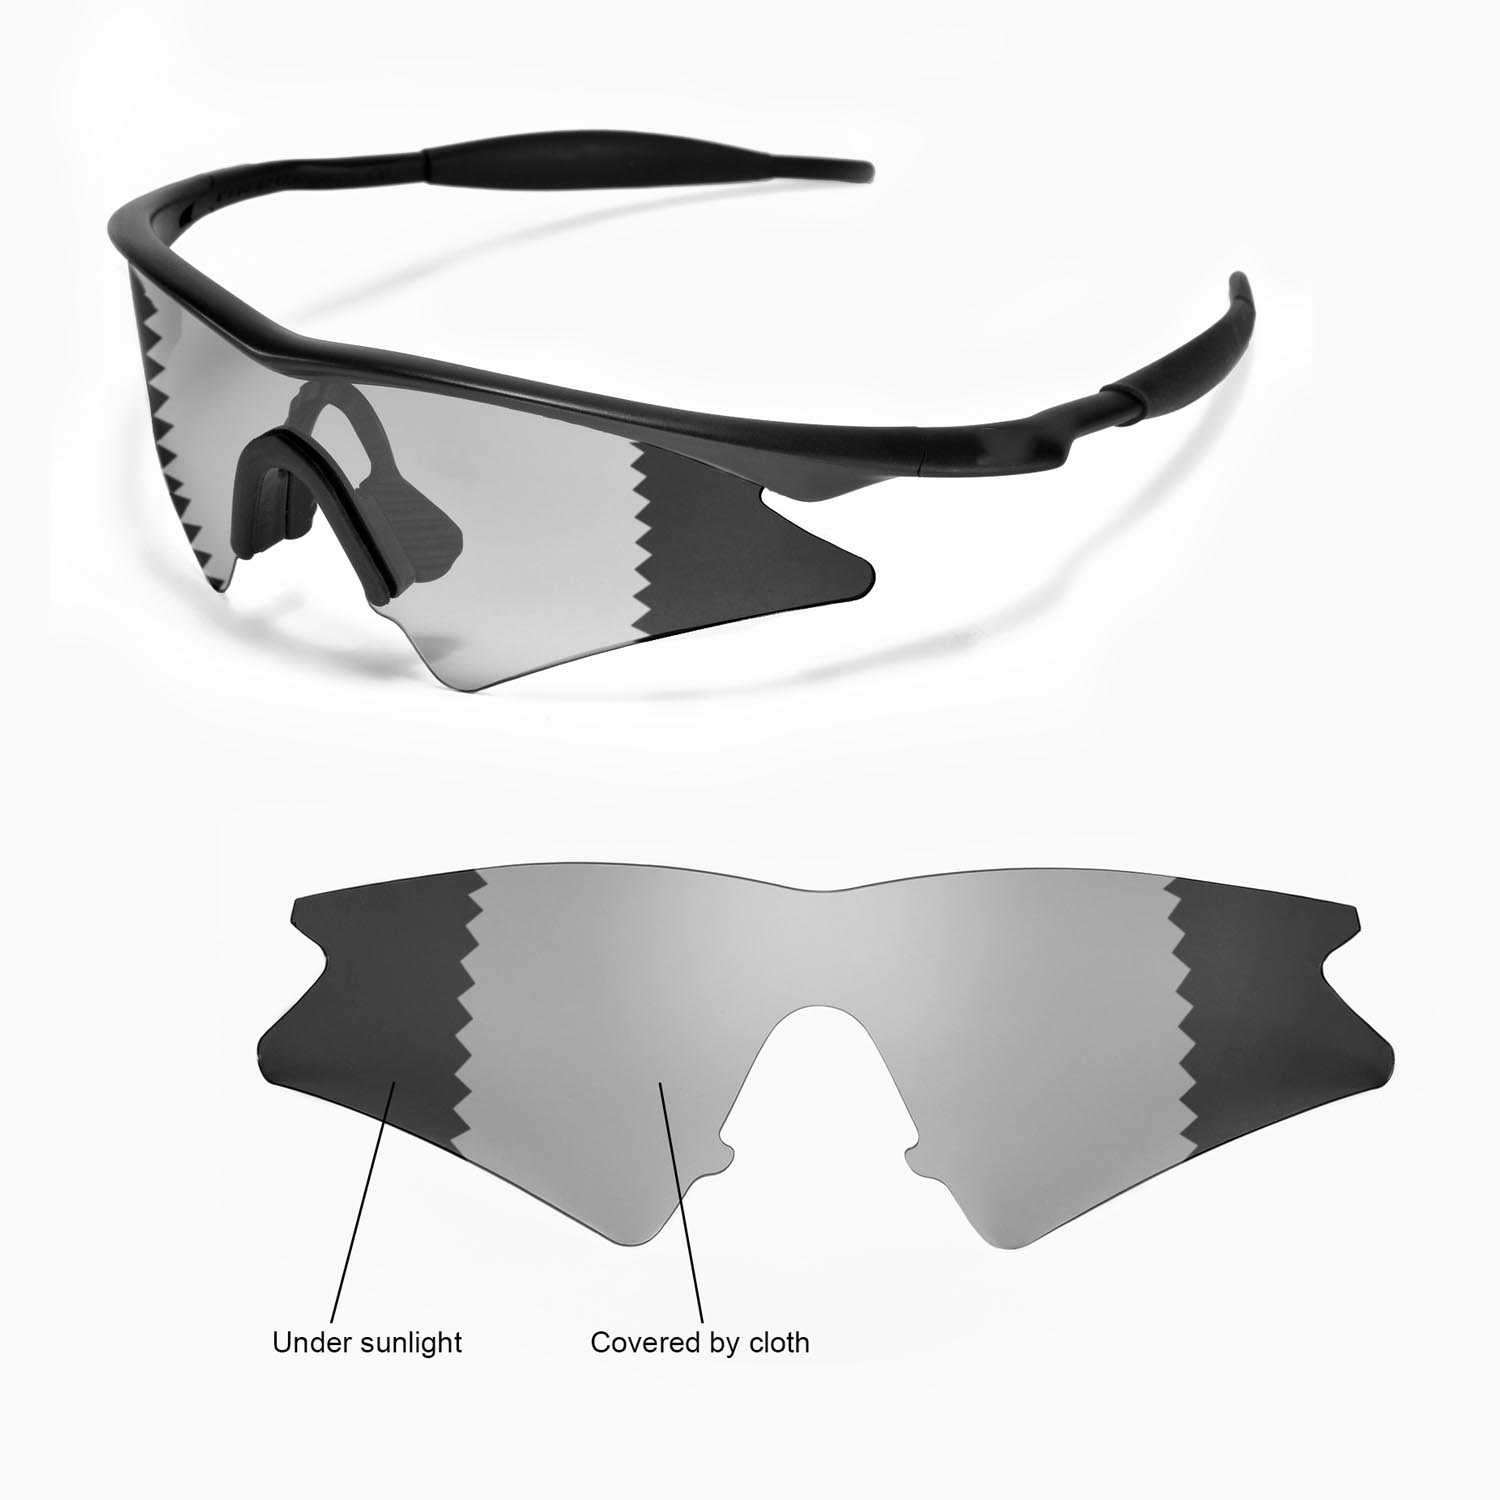 8b912c94010 Details about New WL Polarized Transition Photochromic Lenses For Oakley  New M Frame Sweep